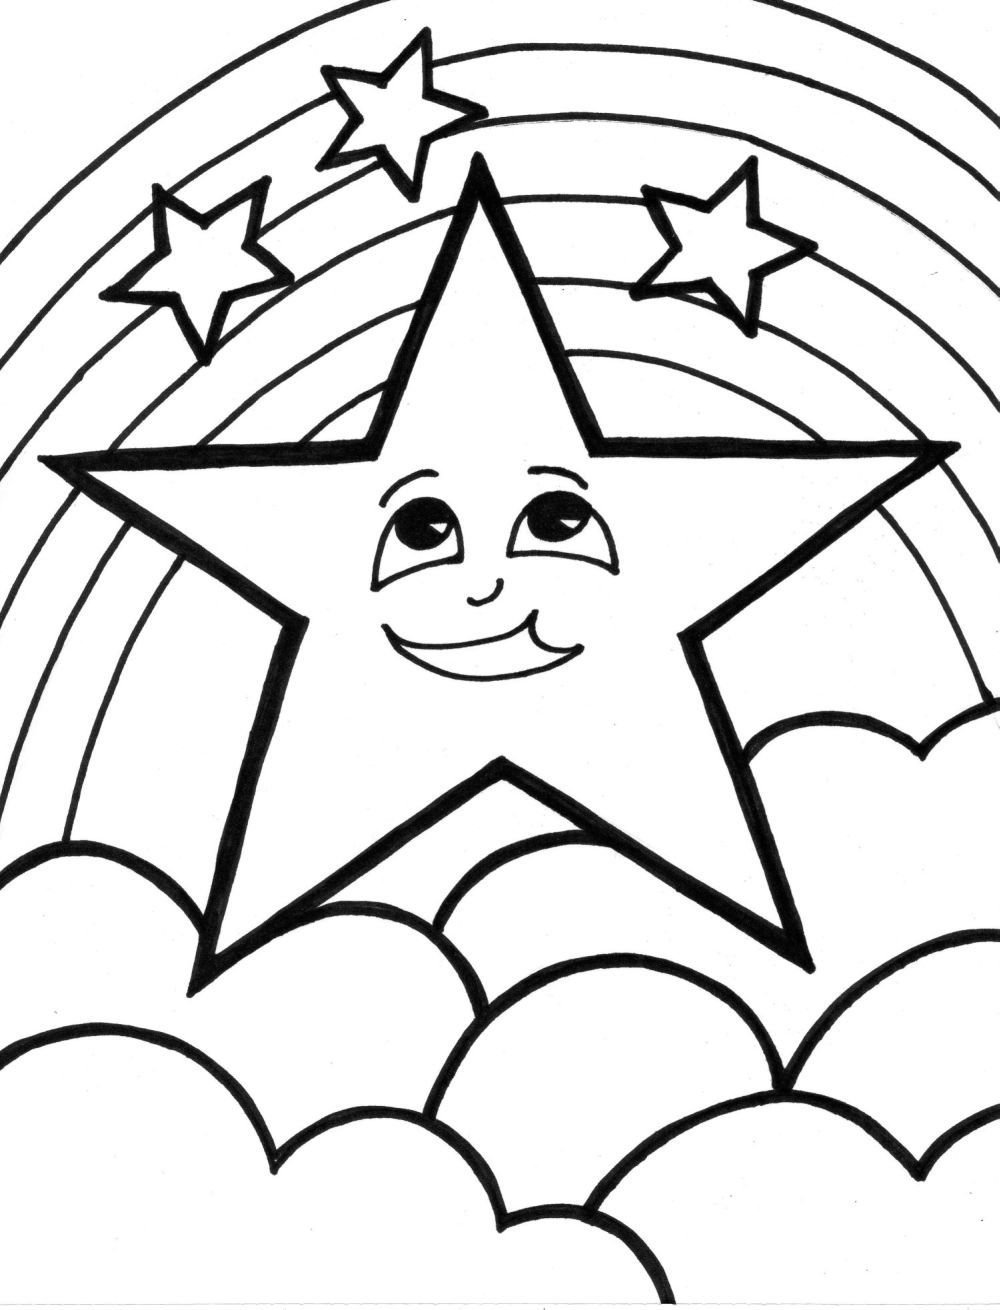 Flower Wallpaper Star Coloring pages that brings Smiles